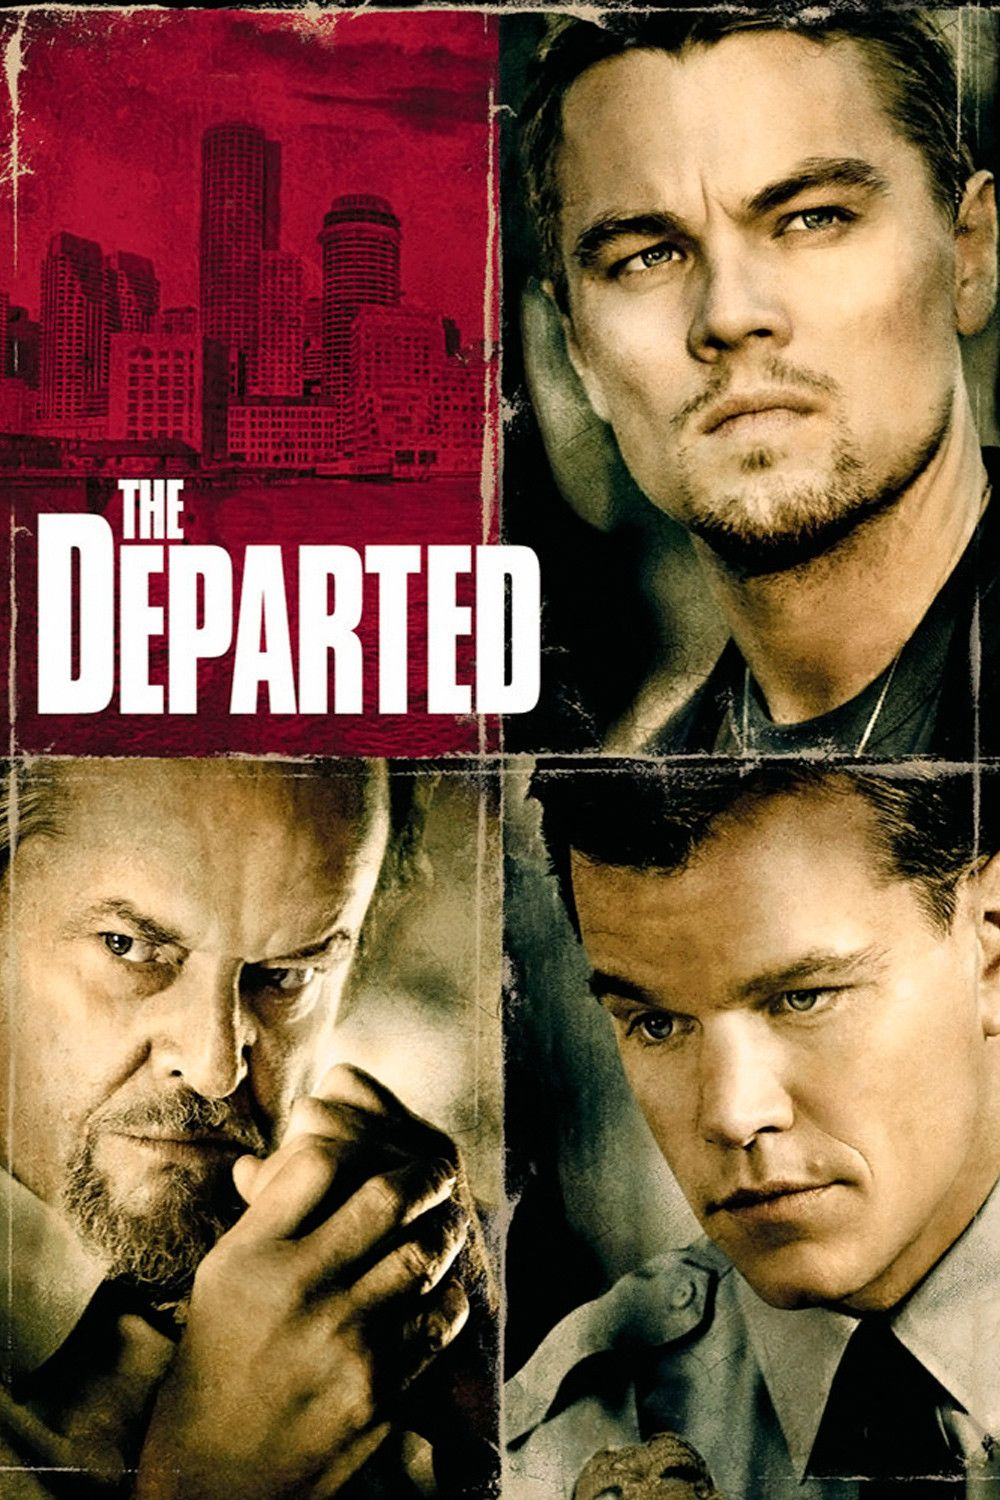 click image to watch The Departed (2006)